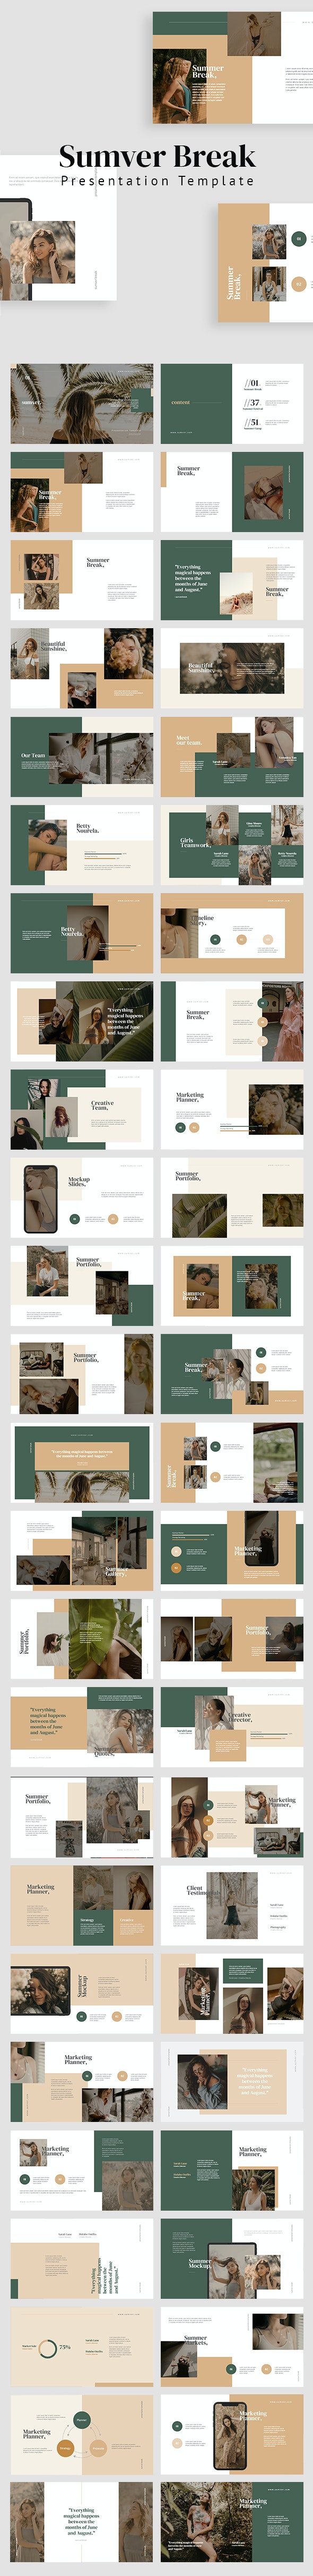 Sumver Break Powerpoint Template - Nature PowerPoint Templates